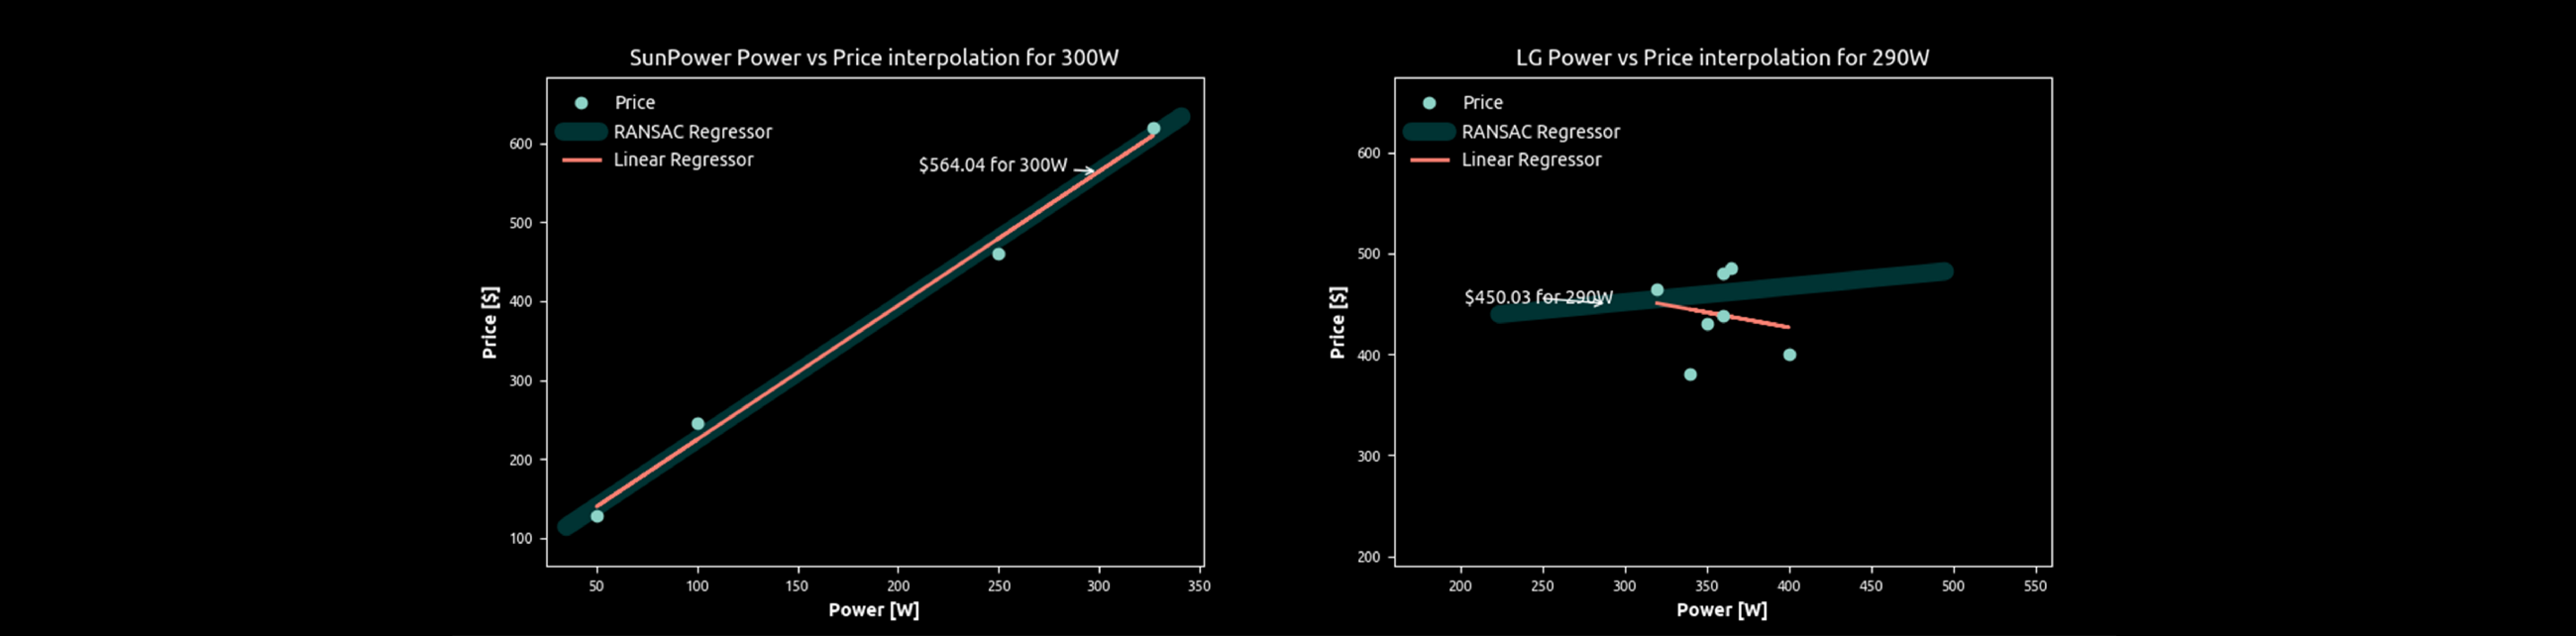 Promoting Energy and Economic Empowerment with Python